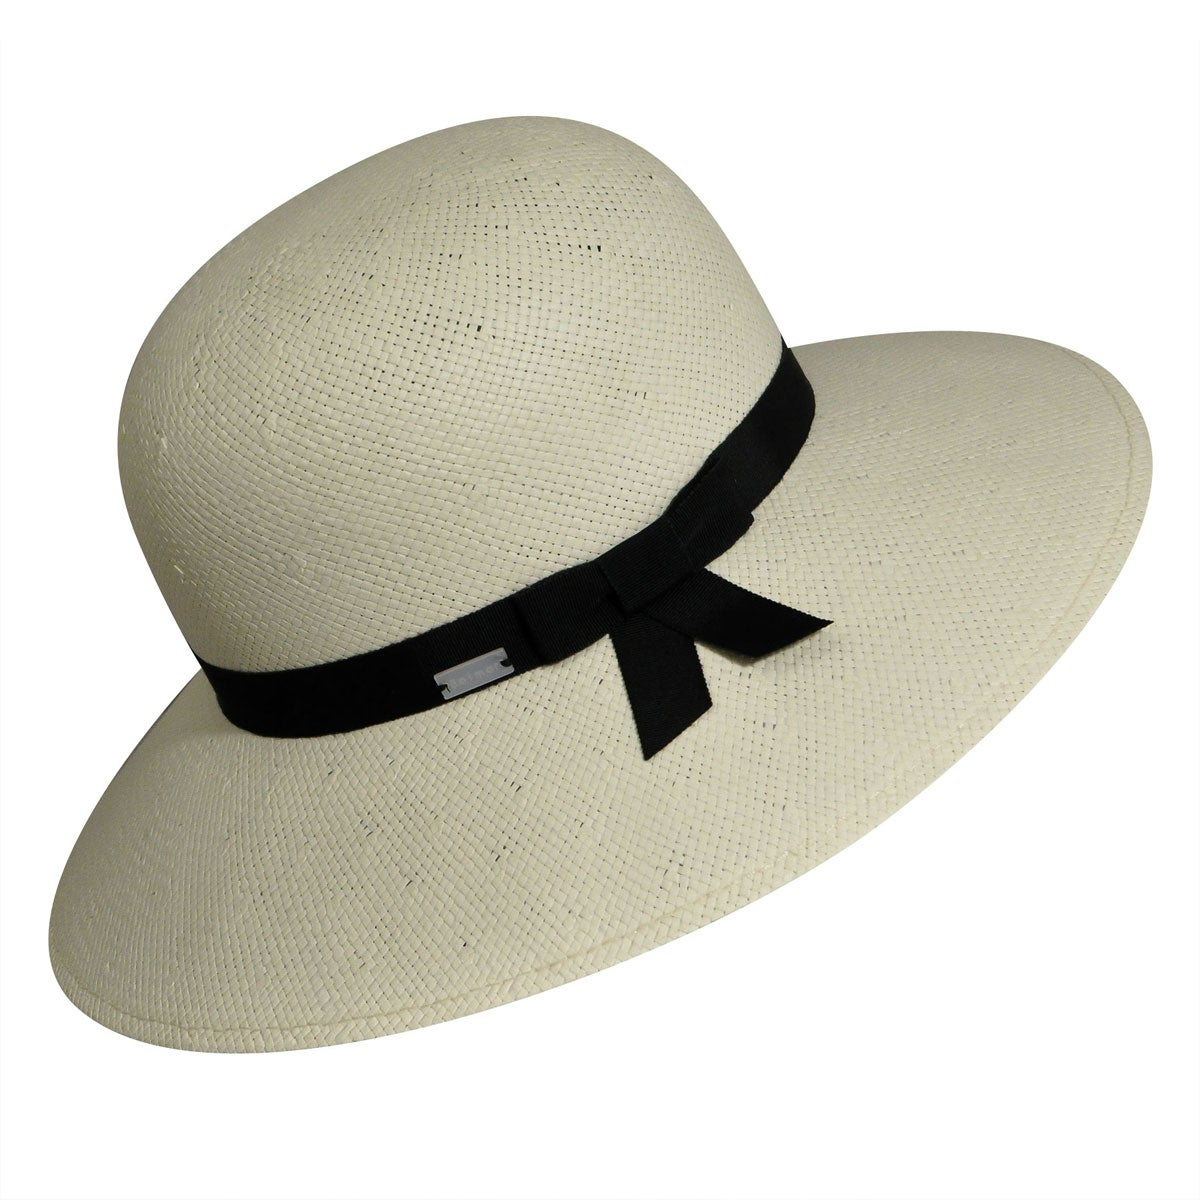 1940s Hats History Aurora II Straw Wide Brim Hat $80.00 AT vintagedancer.com